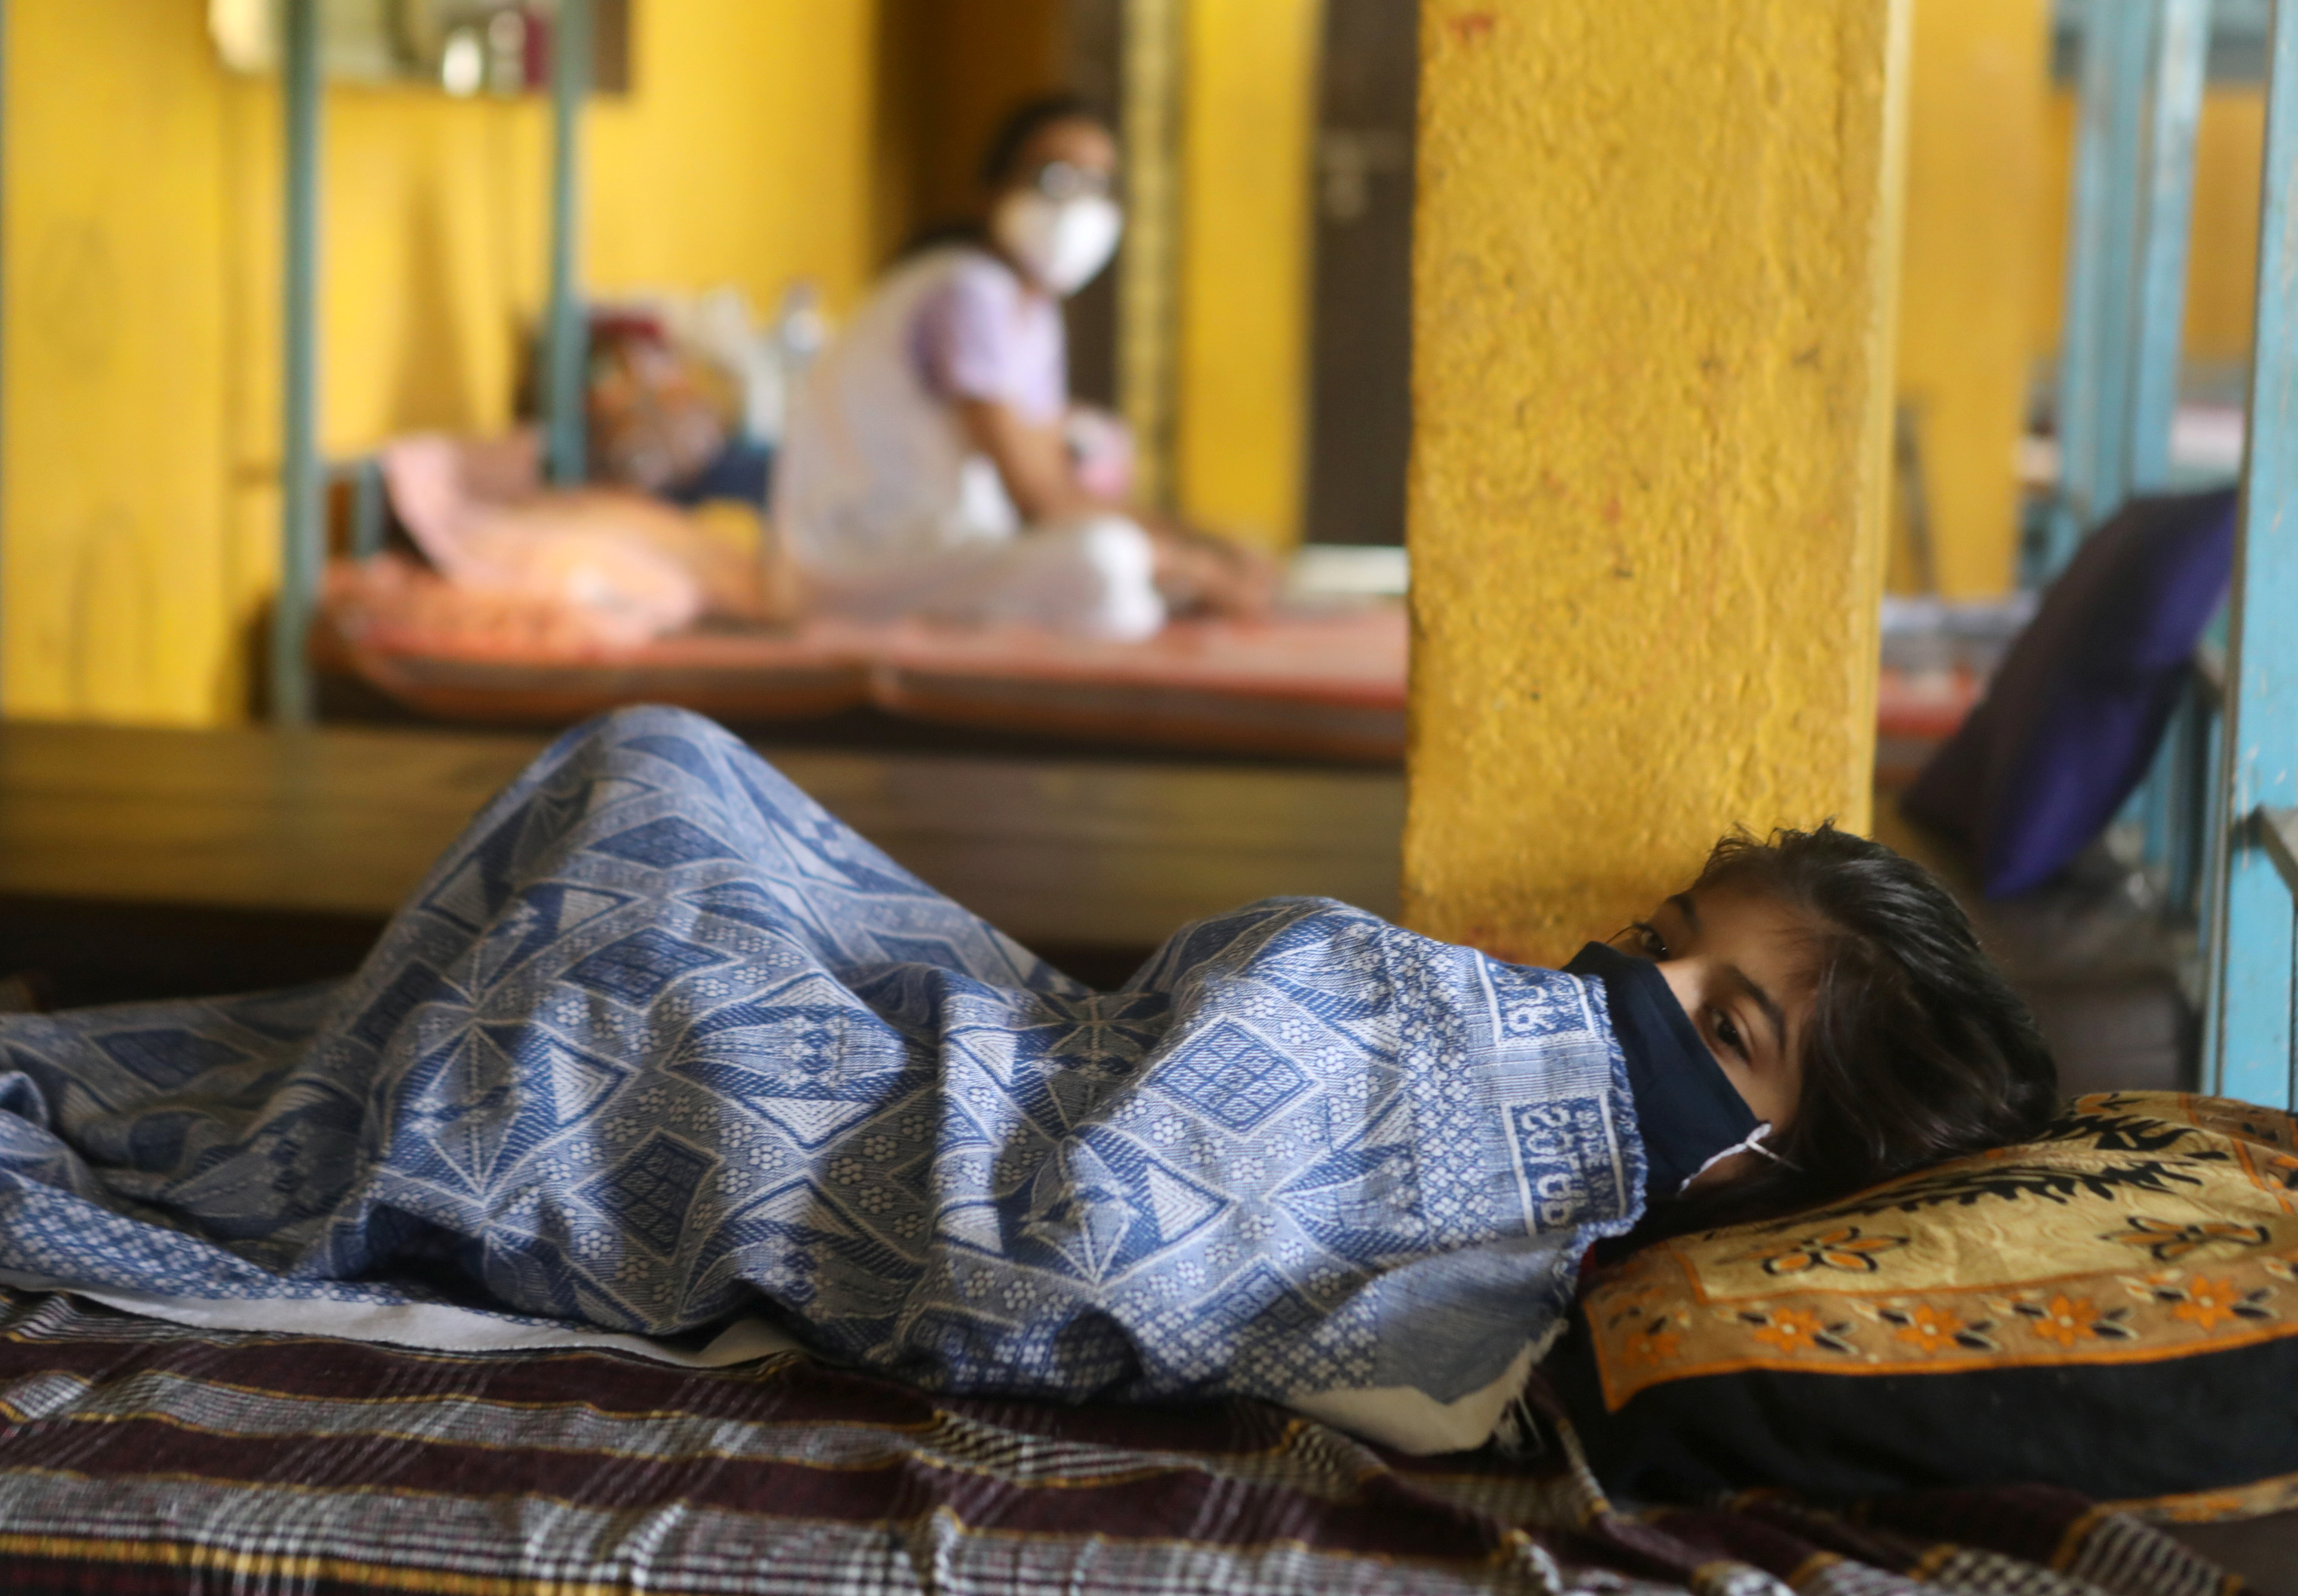 A patient suffering from coronavirus disease (COVID-19) rests inside a classroom turned COVID-19 care facility on the outskirts of Mumbai, India, May 24, 2021. REUTERS/Francis Mascarenhas/File Photo